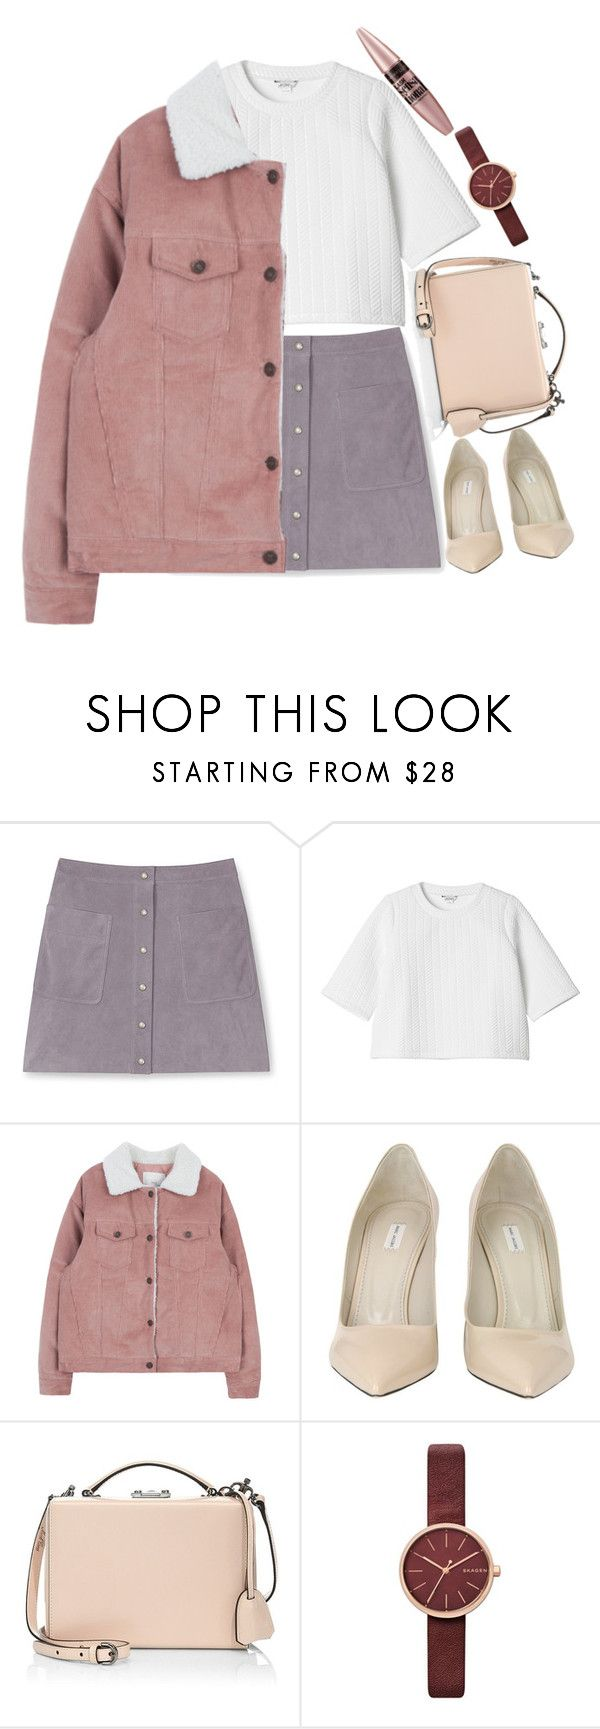 """""""I'm back b!tches"""" by sagelincoln ❤ liked on Polyvore featuring Rebecca Minkoff, Monki, Marc Jacobs, Mark Cross, Skagen and Maybelline"""